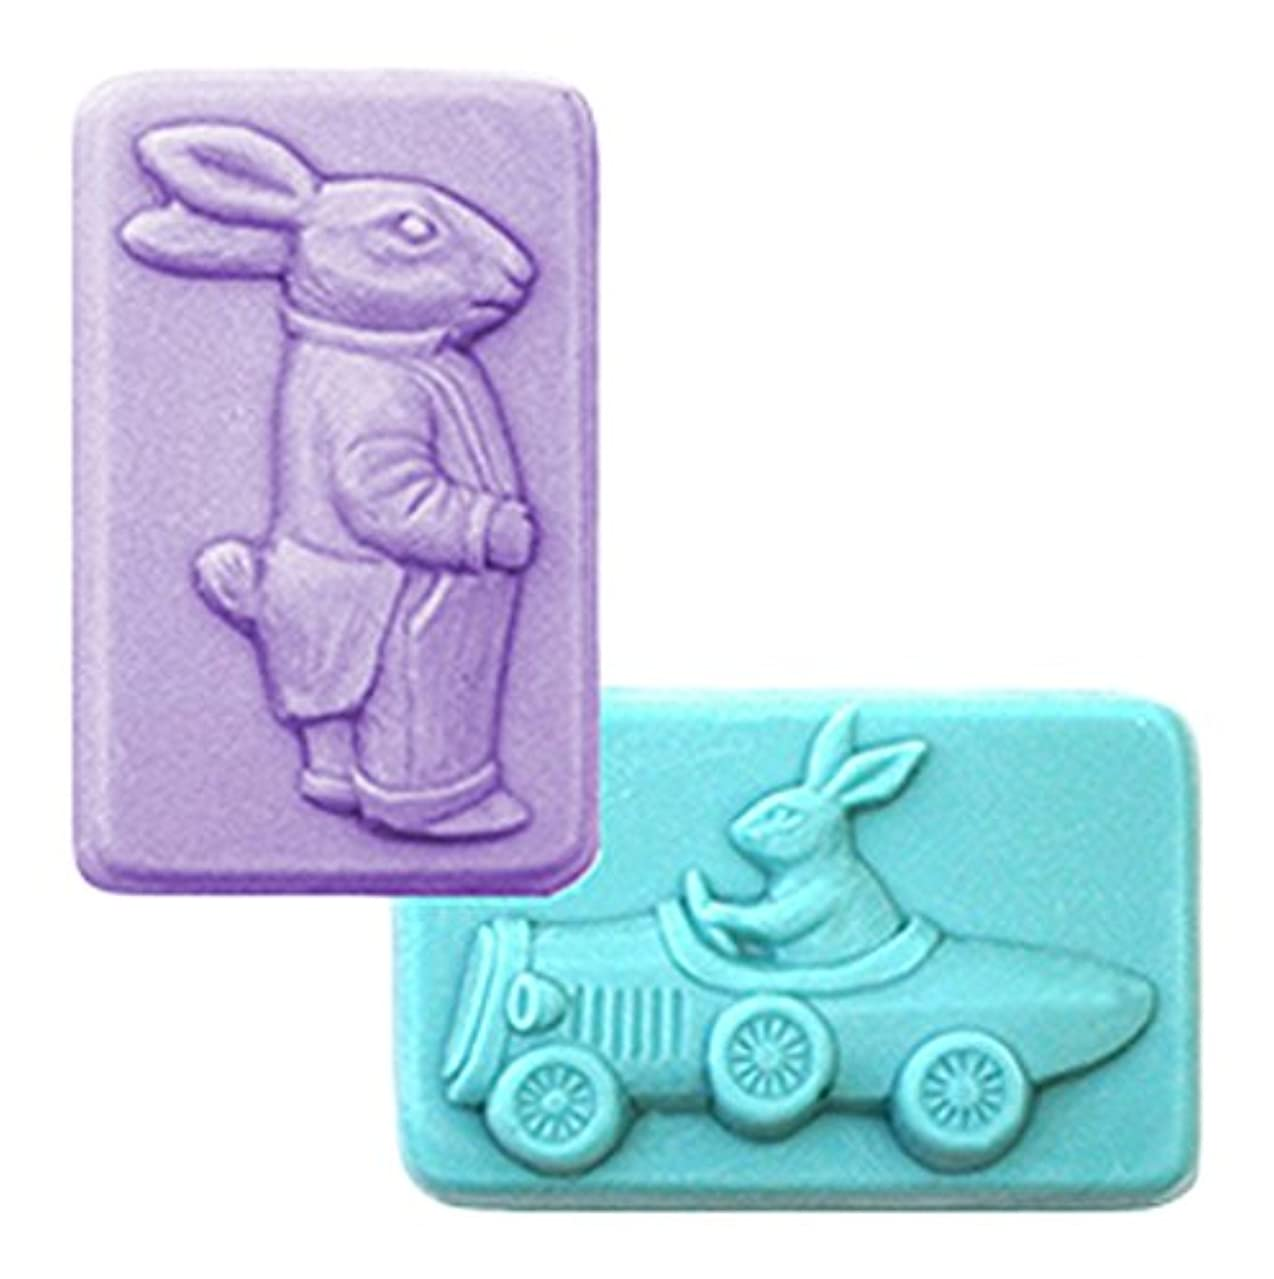 CybrTrayd Easter Rabbits Mold in Sealed Poly Bag, with Richly Illustrated 44-Page Soap Molder's Guide